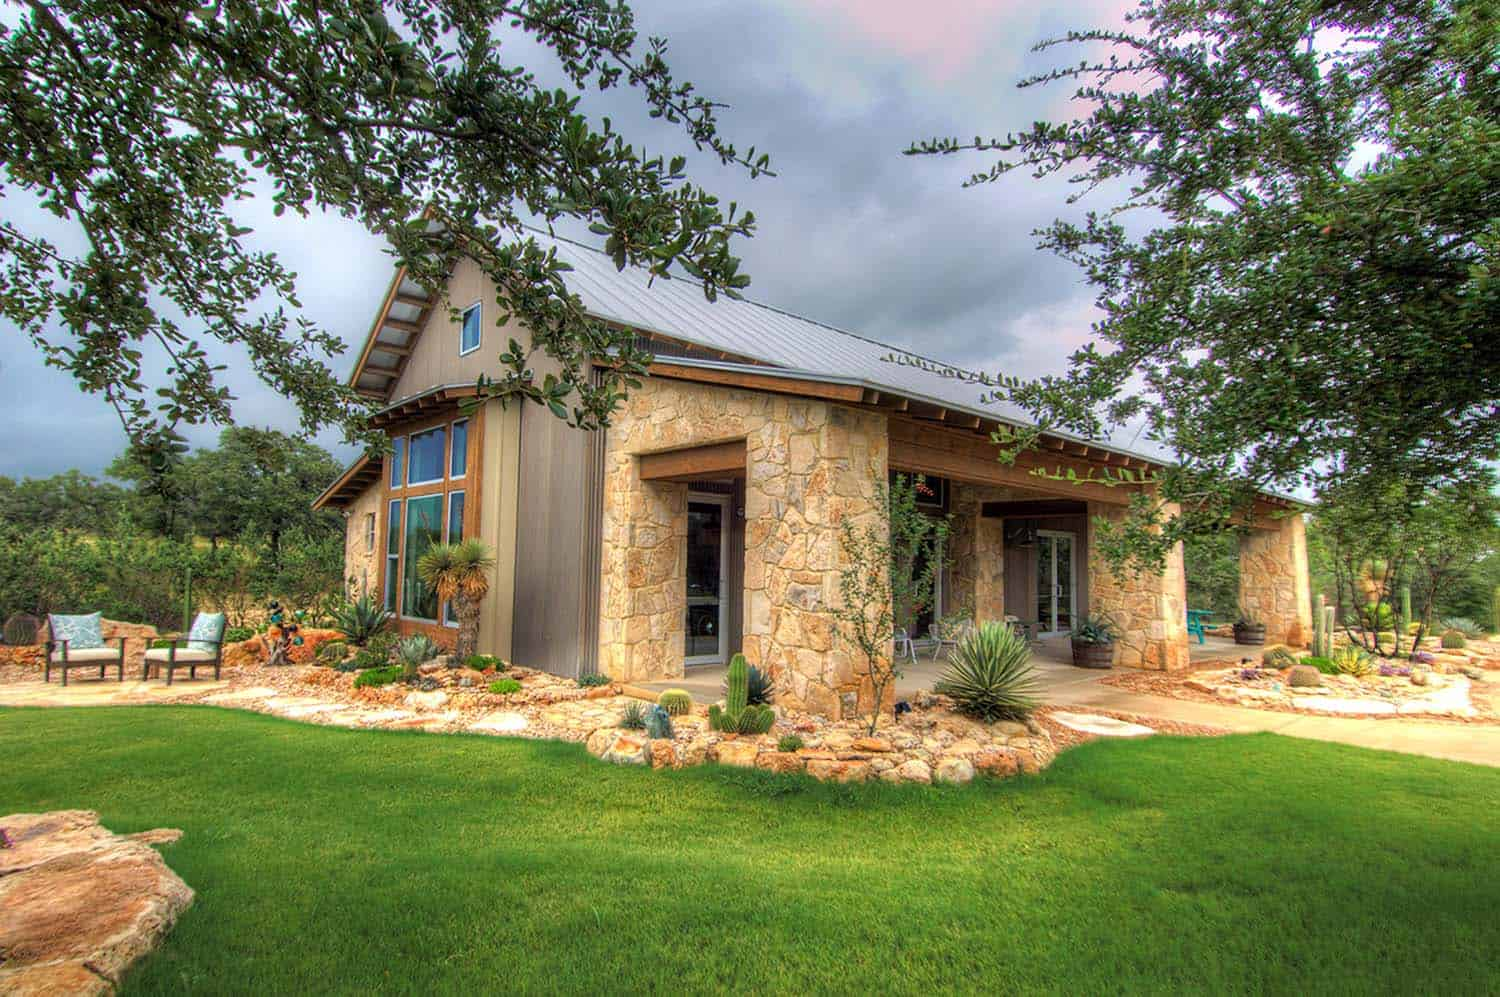 Rustic Ranch House Design Texas on Rustic Barn House Design